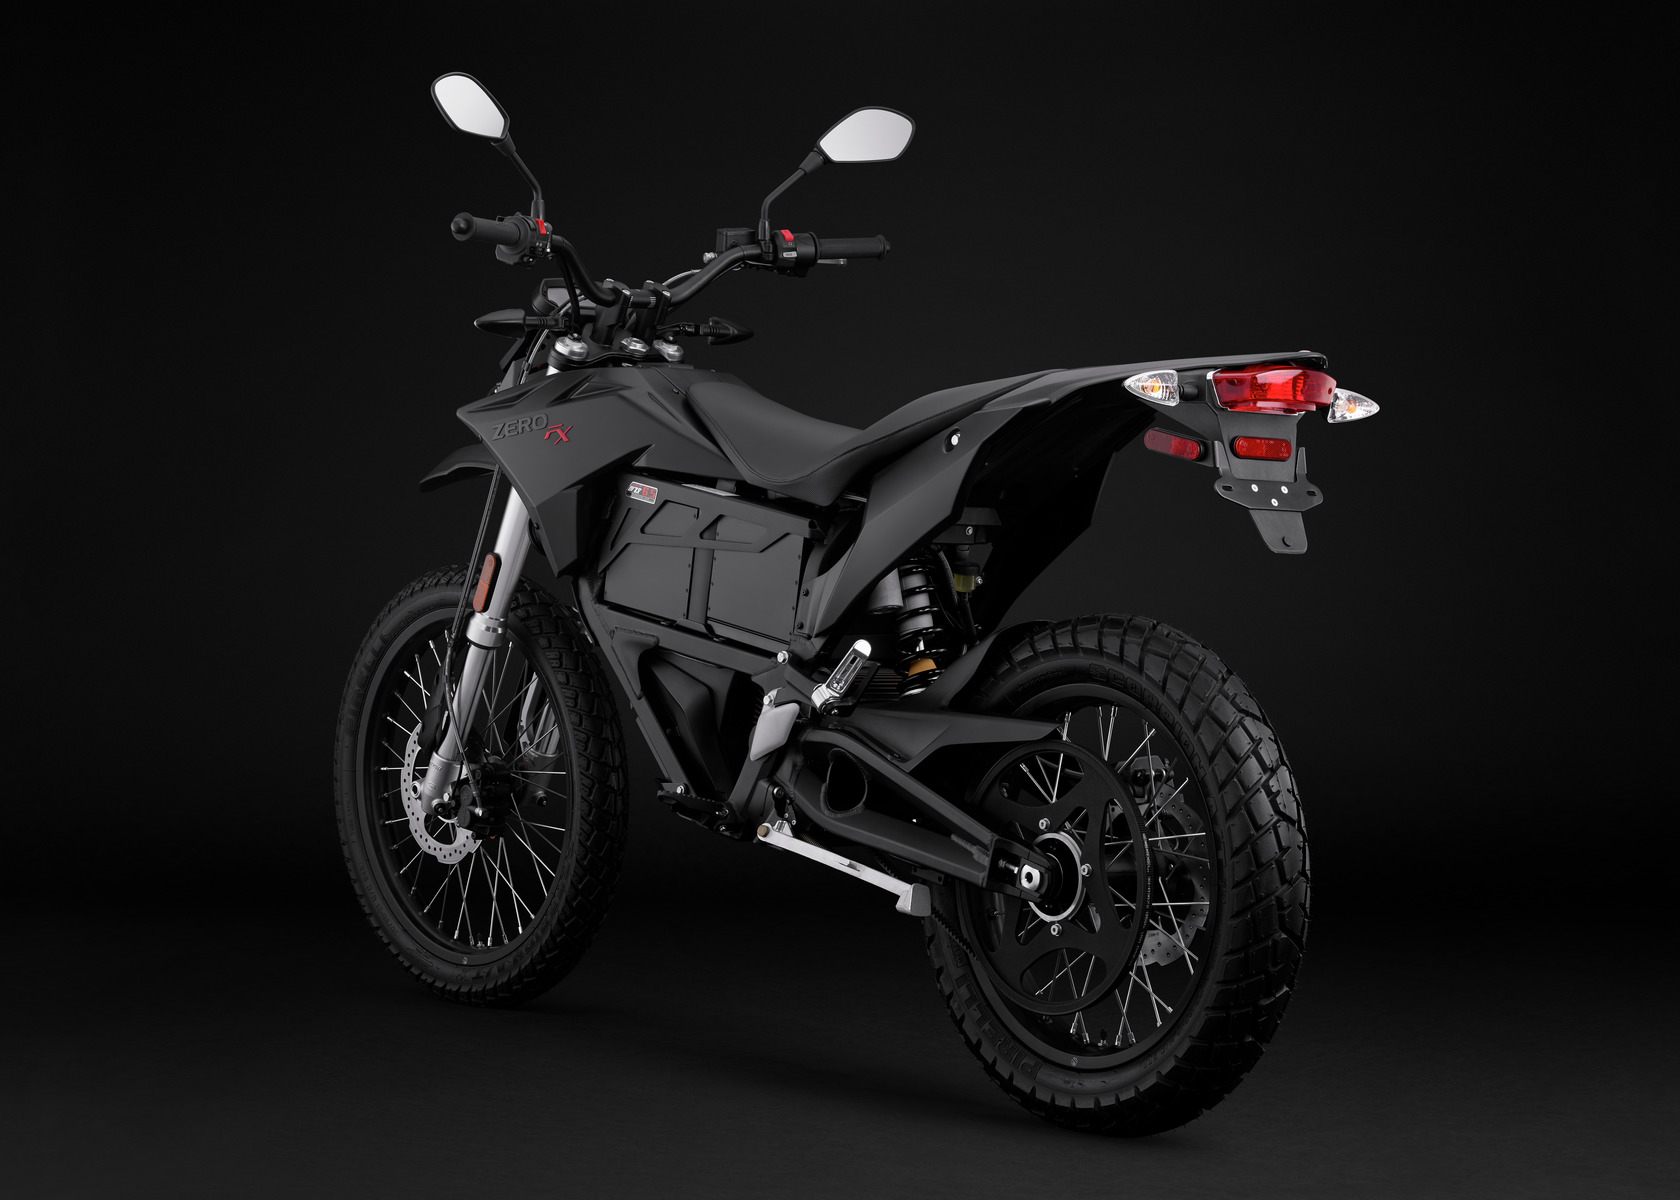 2016 Zero FX Electric Motorcycle: Black Angle Left